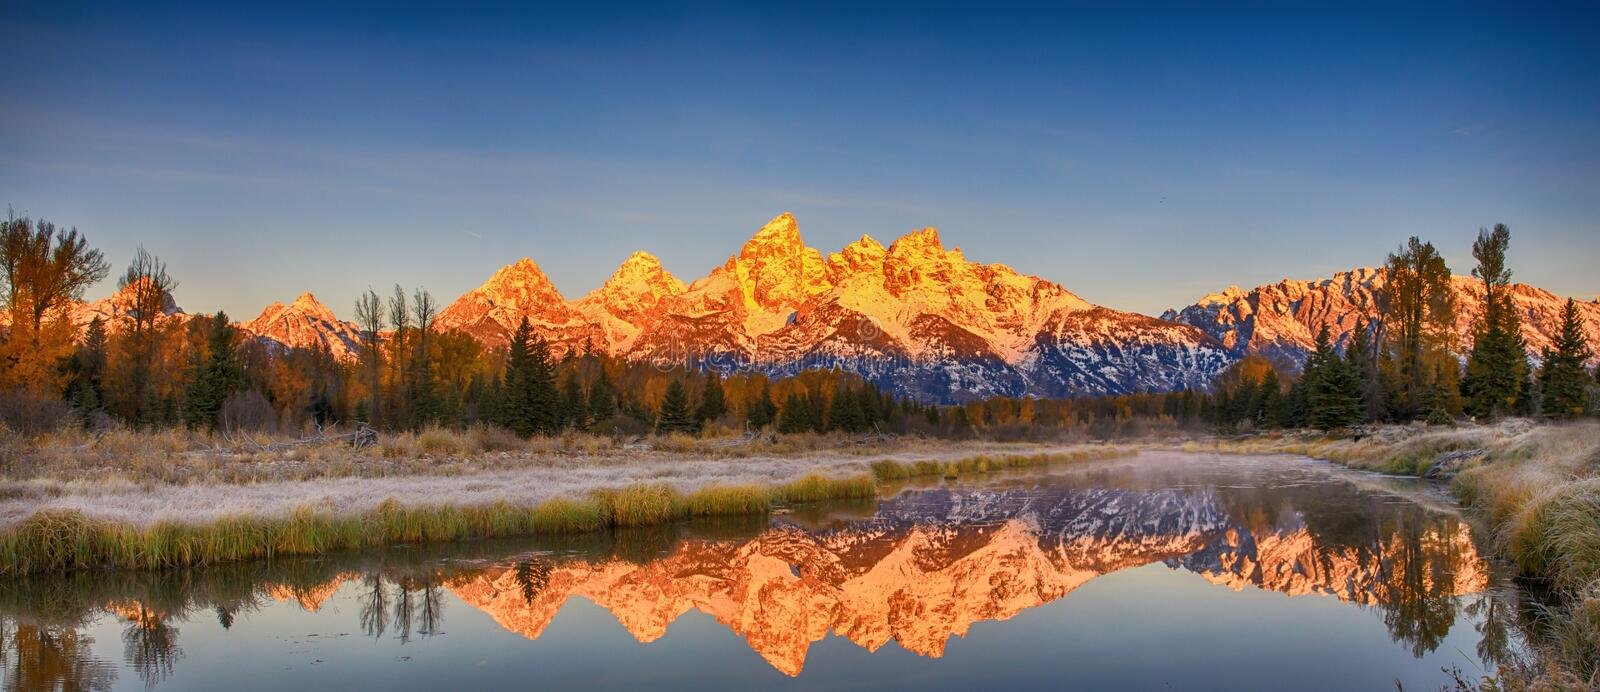 Grand Teton Range Reflection, Wyoming, America royalty free stock images